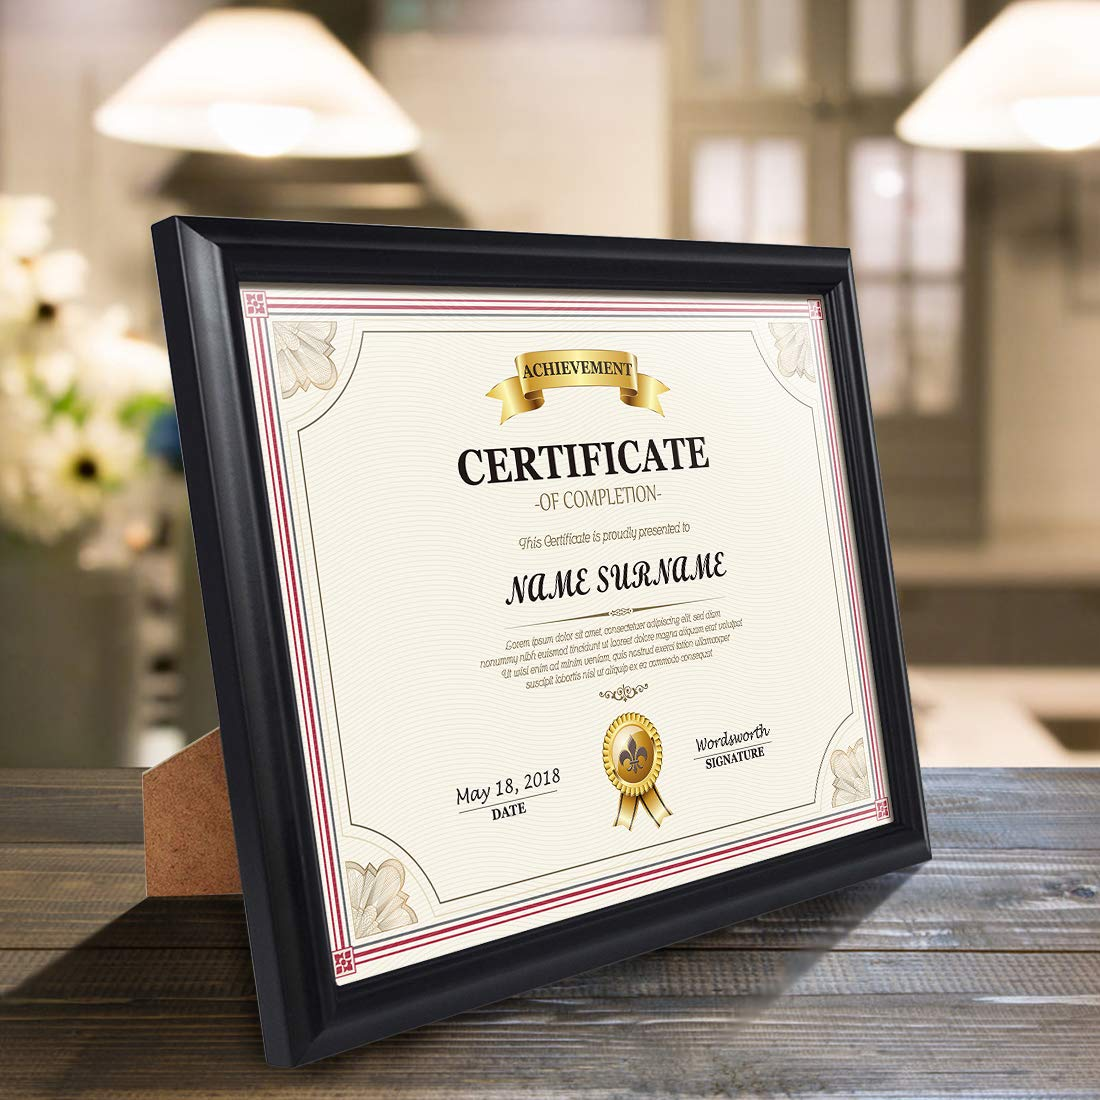 Artsay 8.5x11 Document Certificate Diploma Frame Black Picture Frames 8.5 x 11, Wall and Tabletop Display, 4 Pack by Artsay (Image #5)